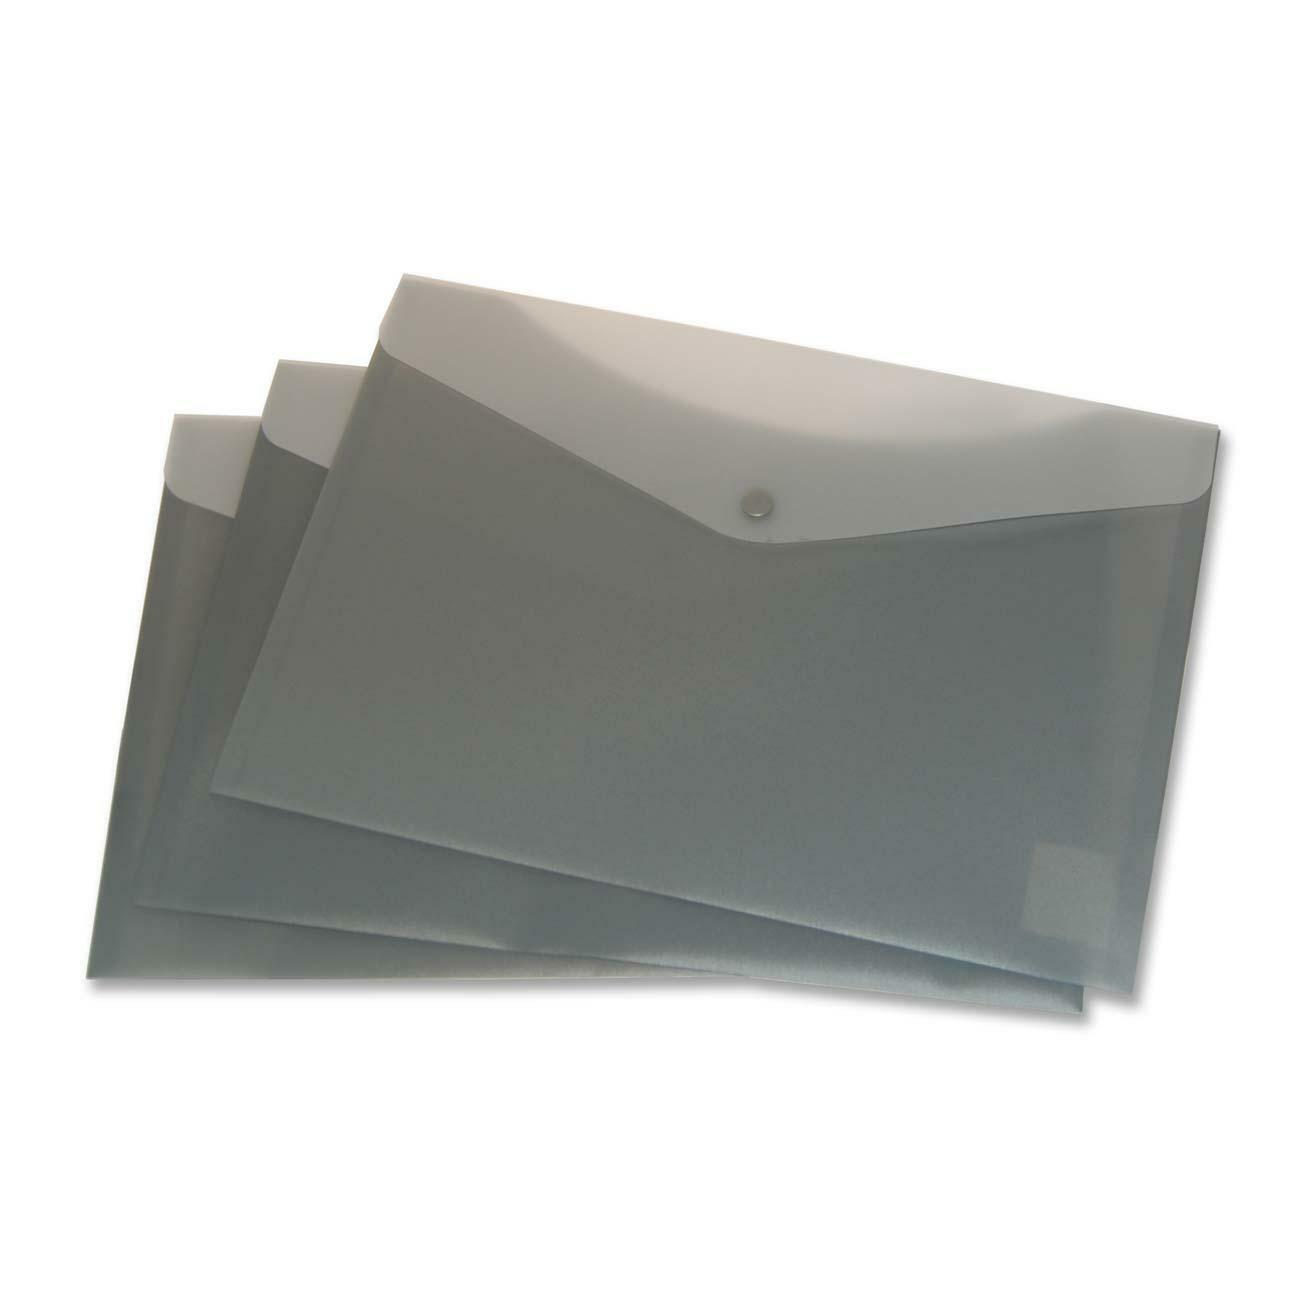 Glennco Office Products Ltd  Office Supplies  Envelopes  Forms